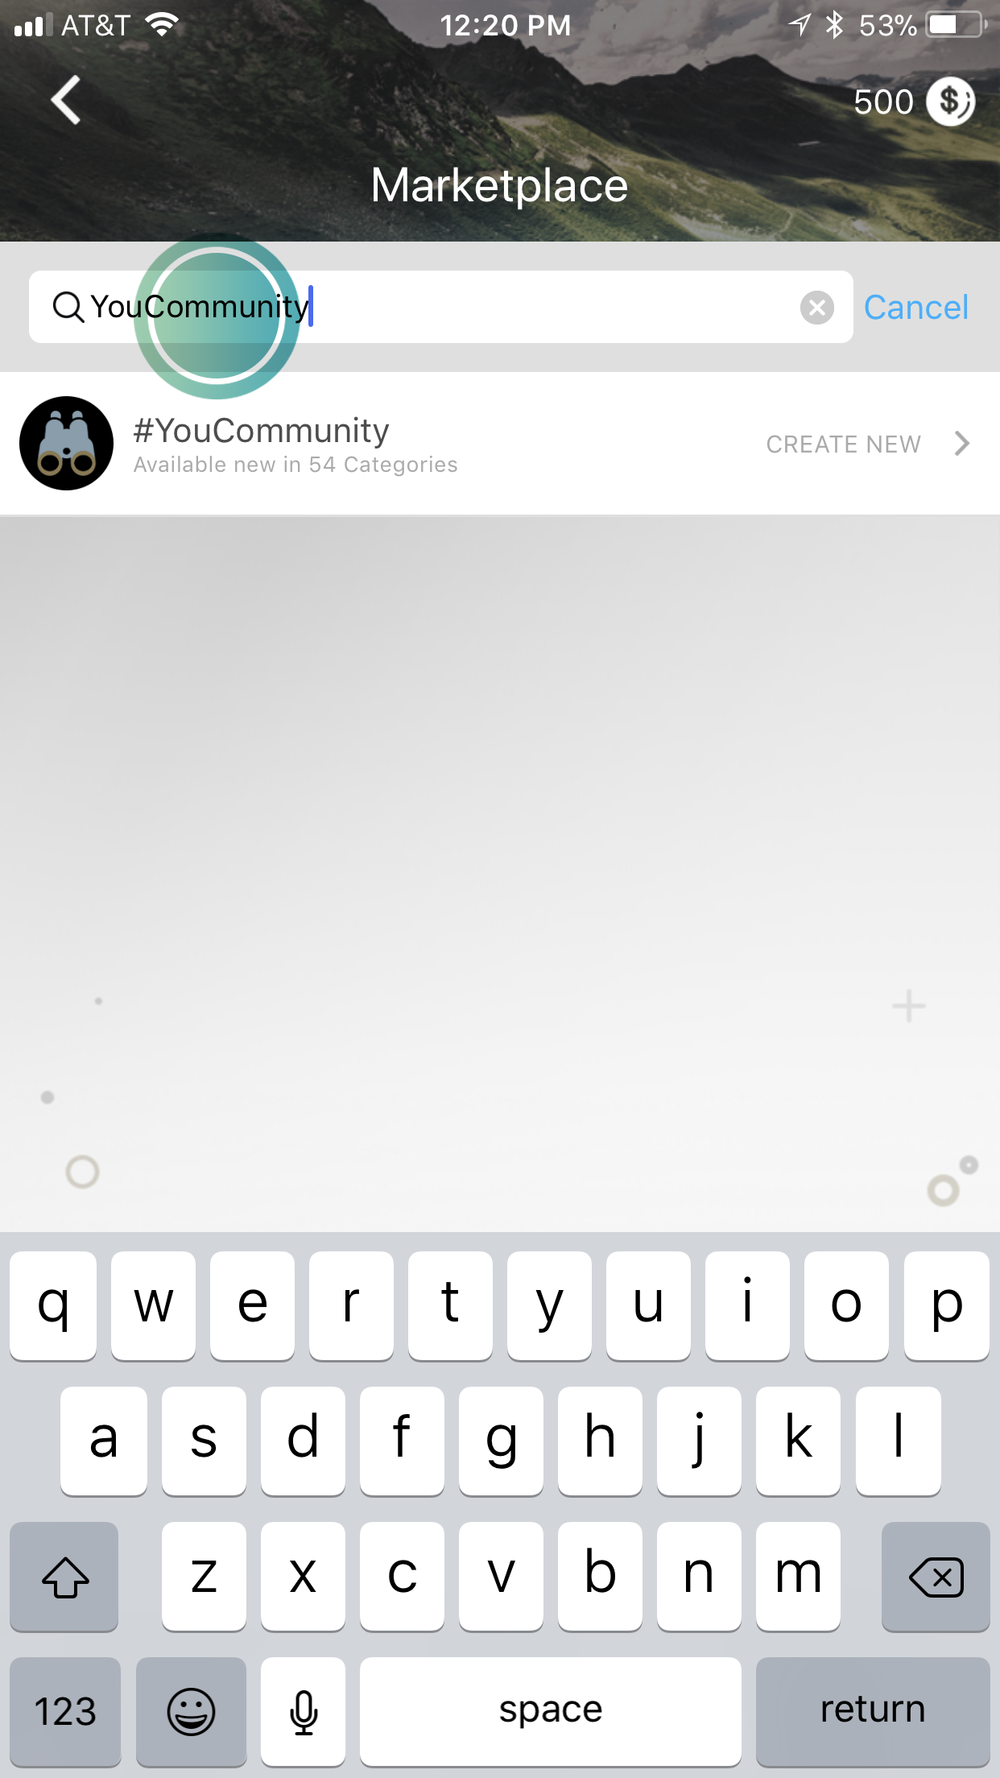 4. Type in your Community name/title -